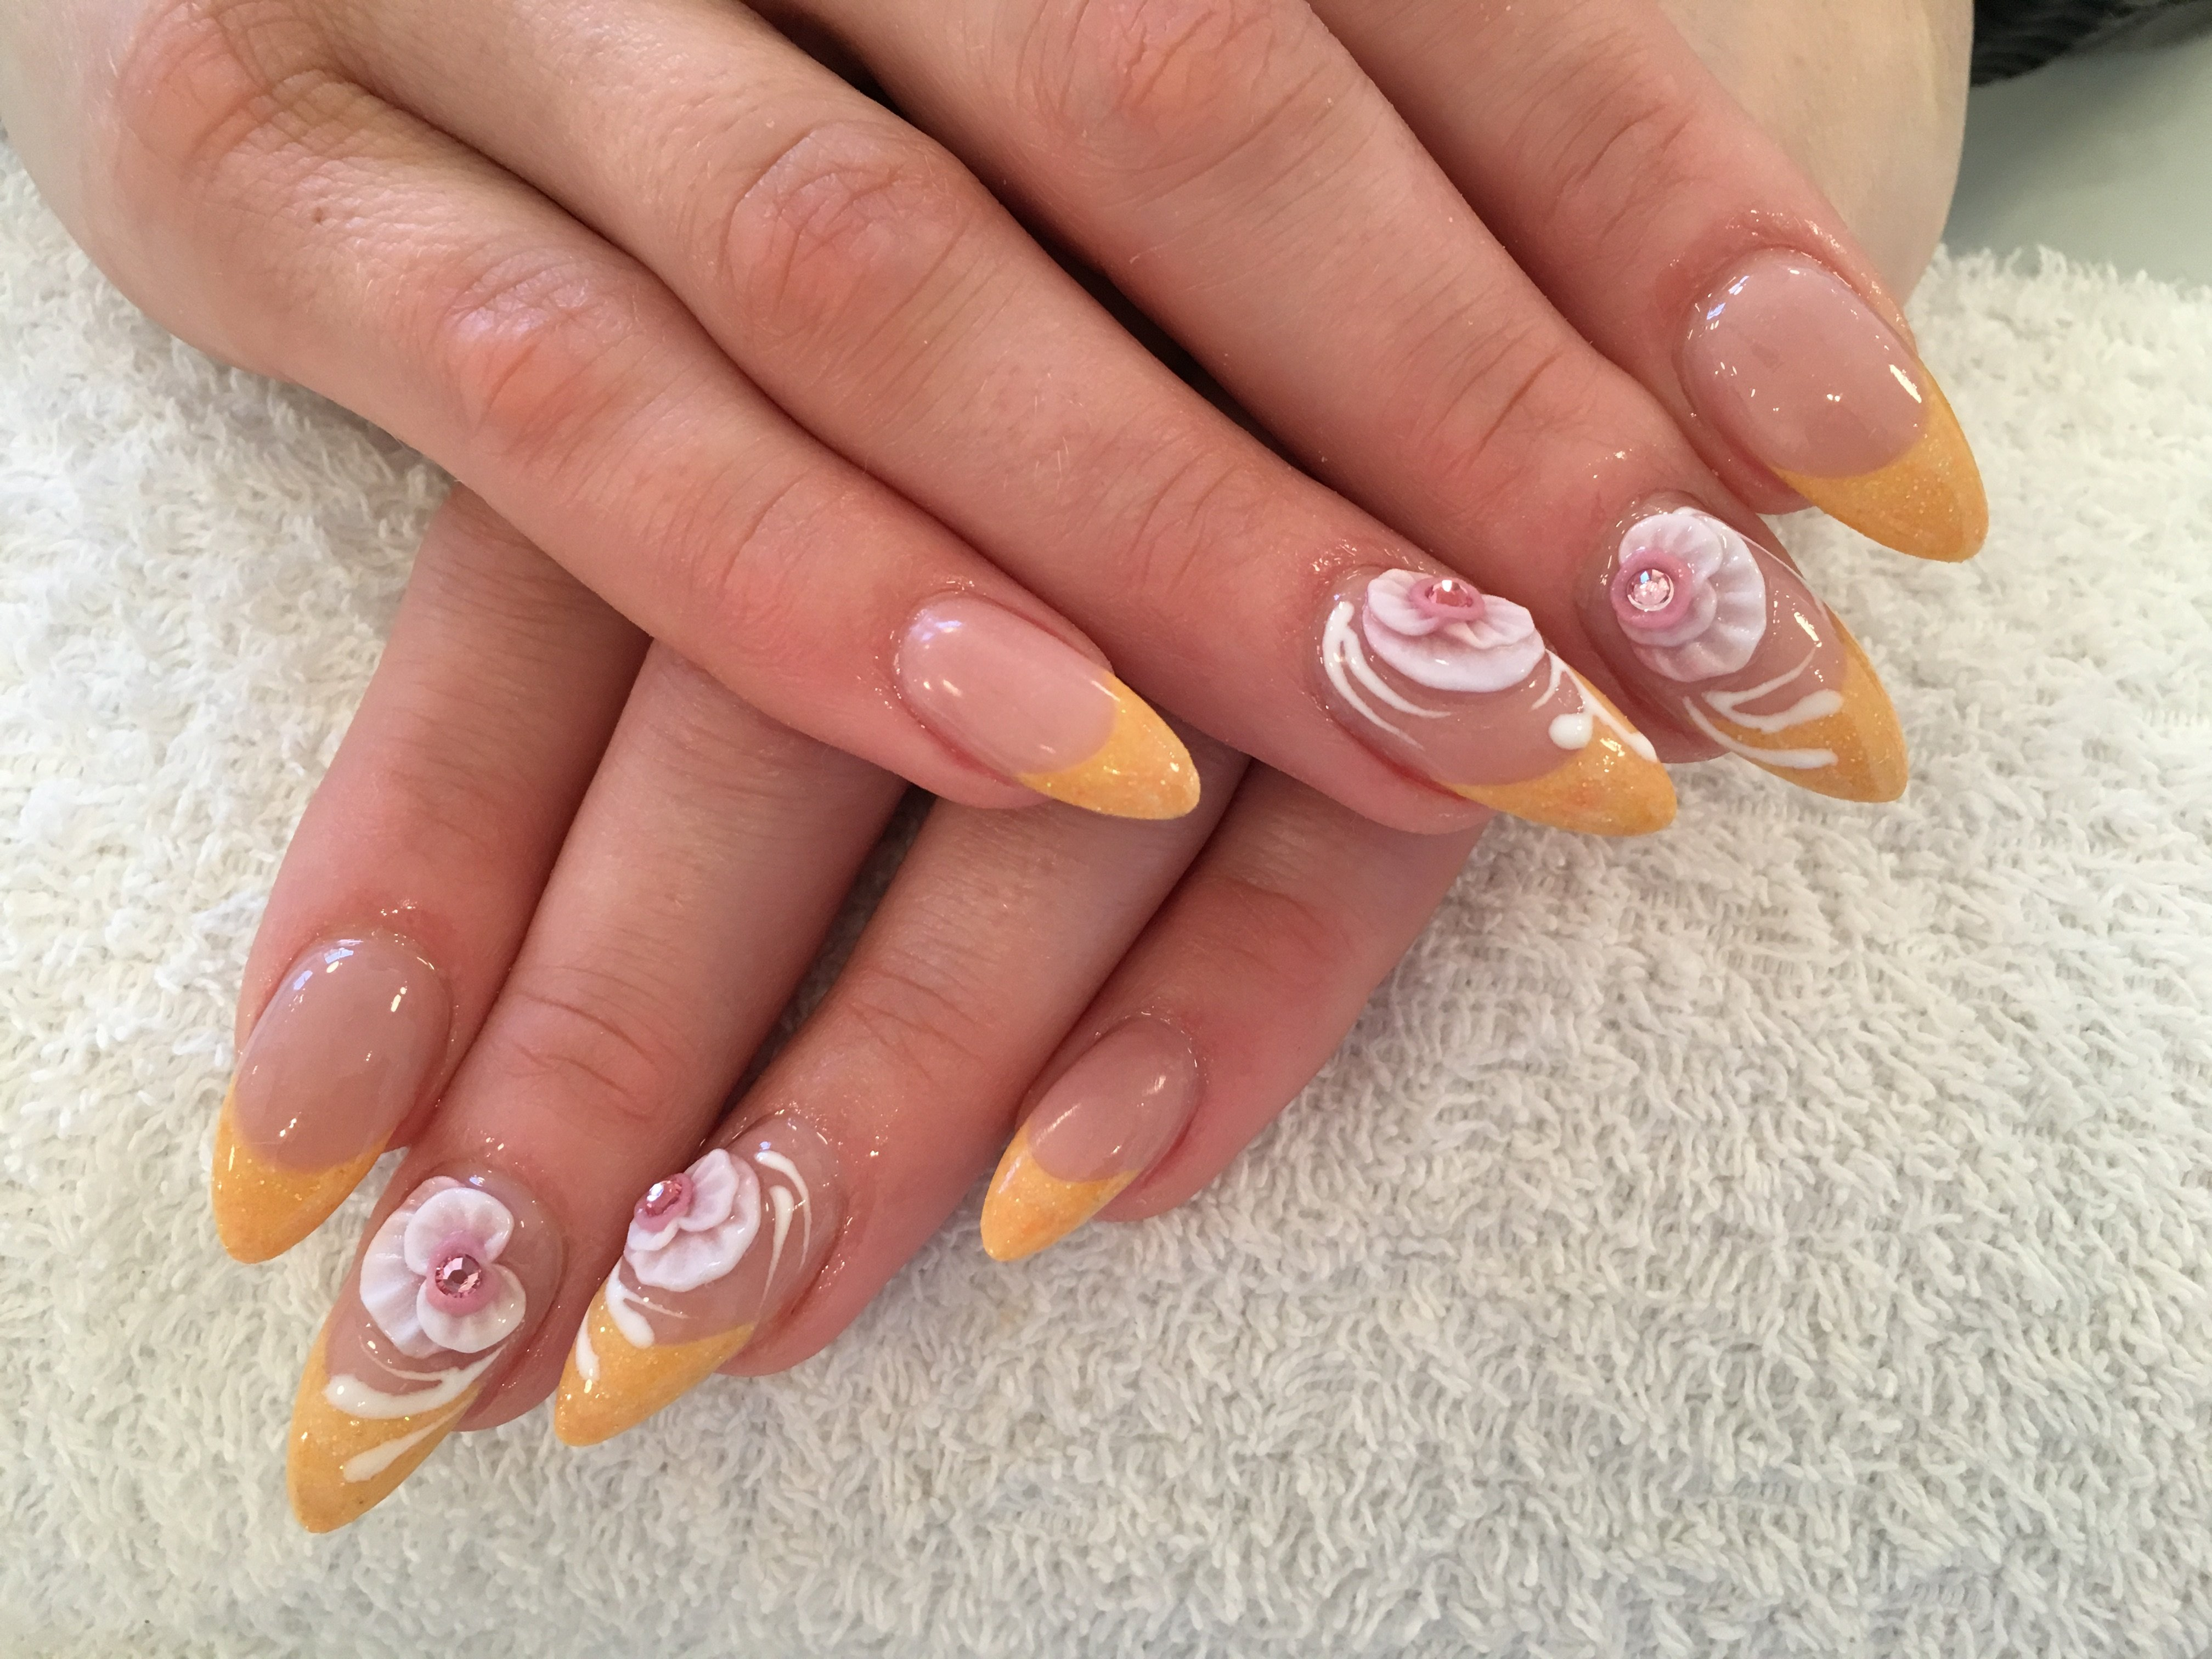 Care 4 Your Nails Beauty Salon Acryl Nagels Foto 13 Care 4 Your Nails Beauty Salon